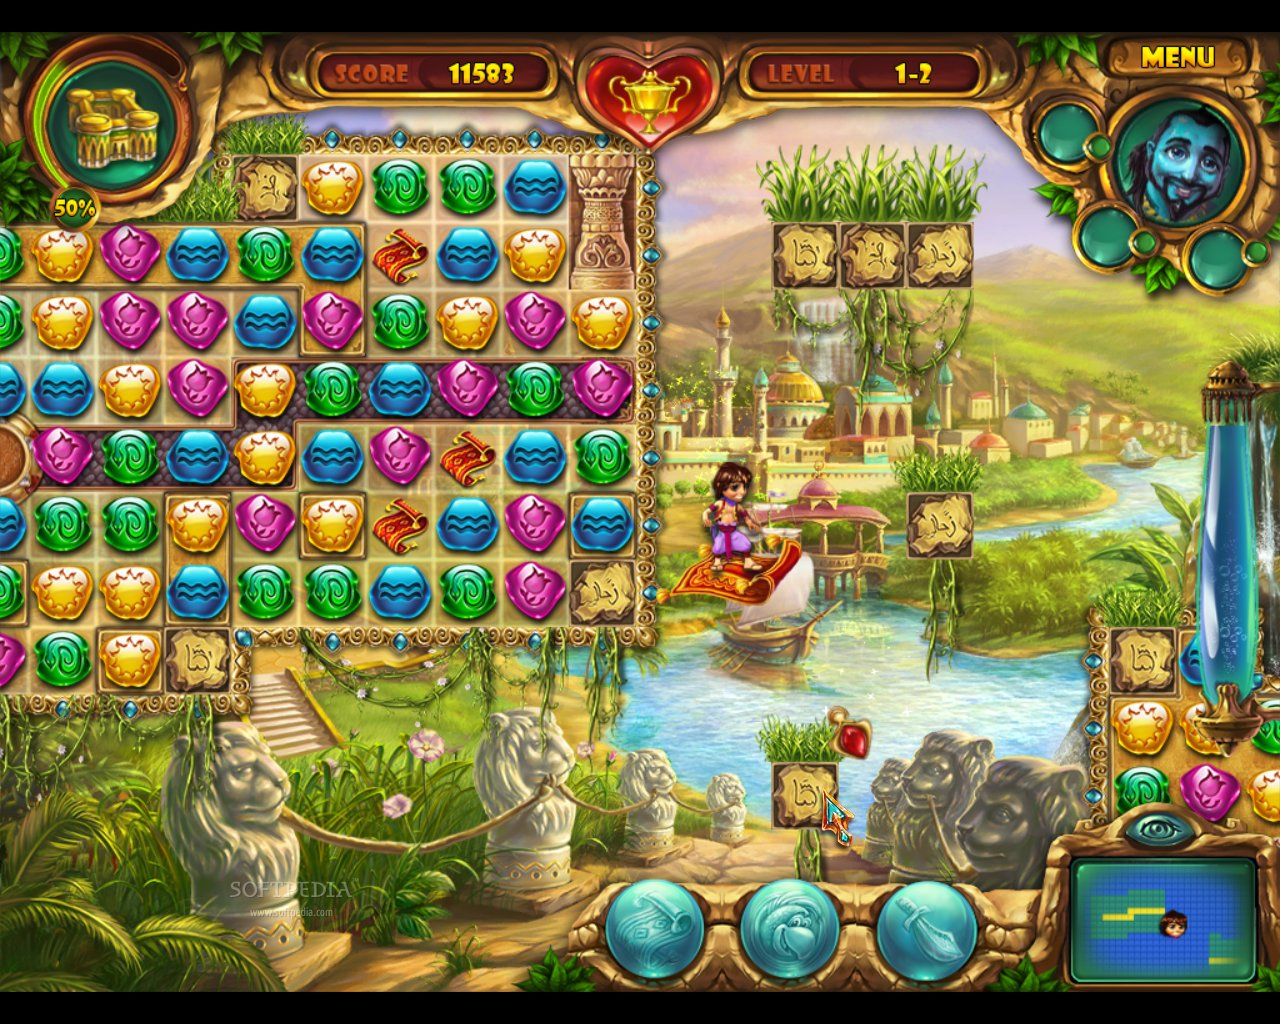 Download and play Lamp of AladdinOnline Download and play Lamp of AladdinOnline ...